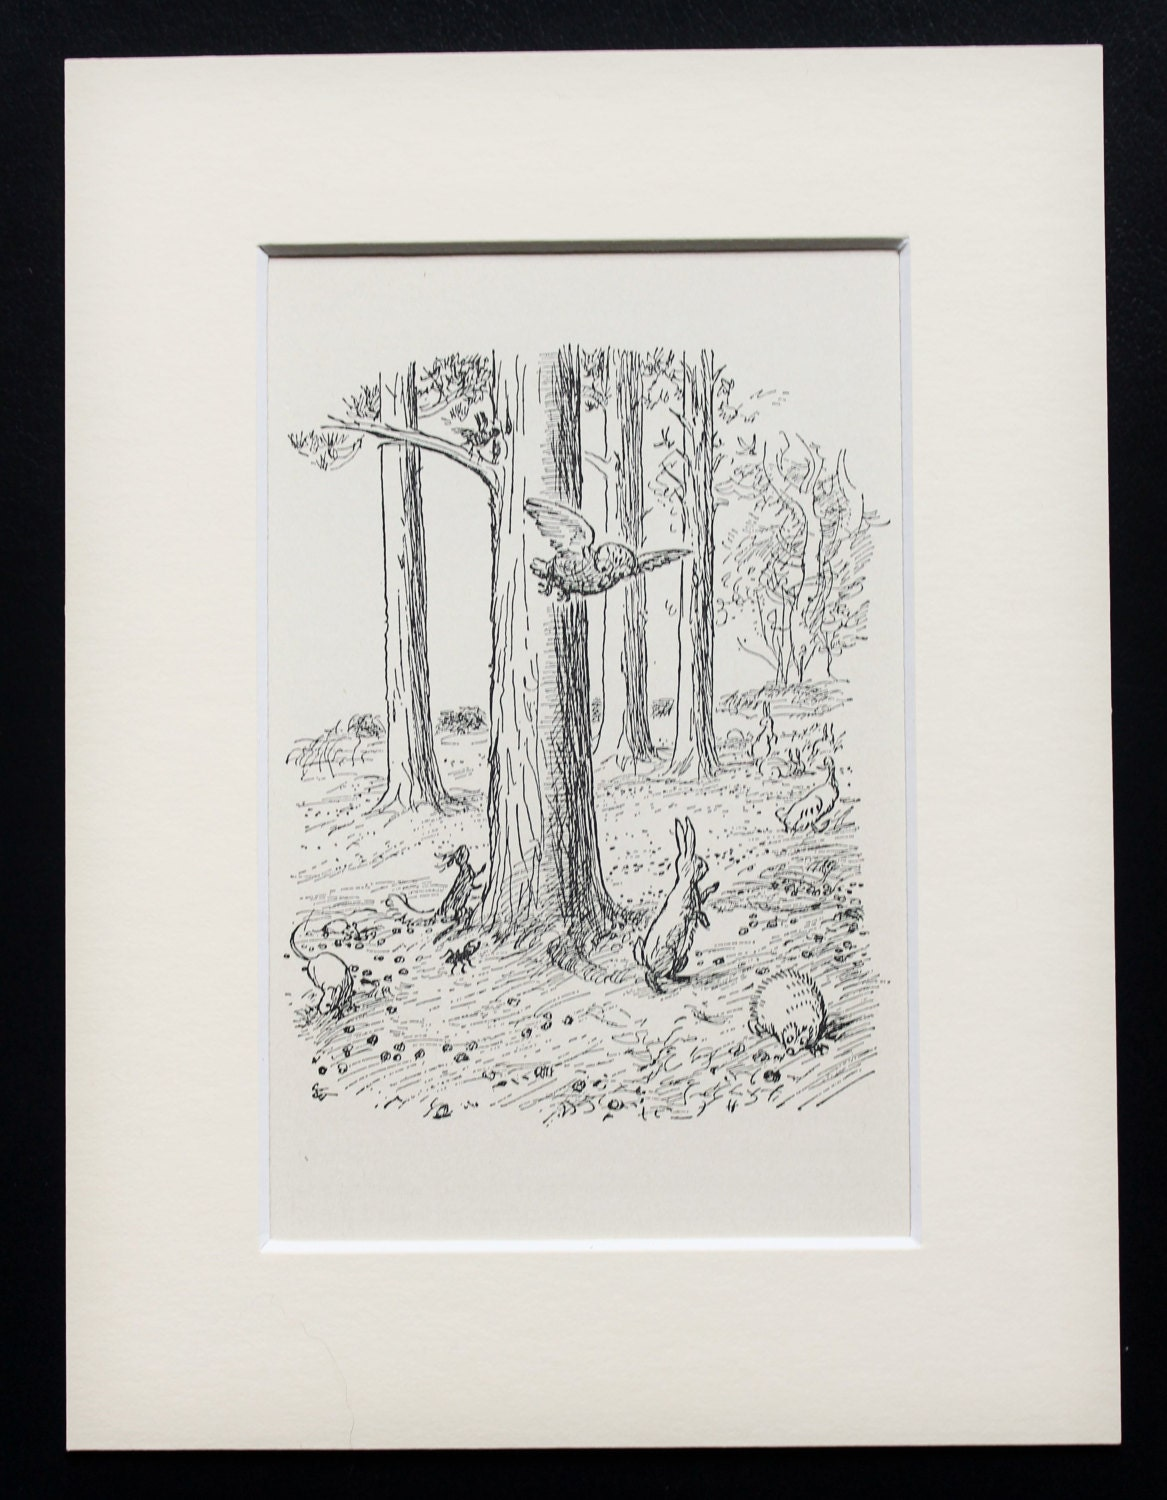 Winnie The Pooh Owl And Rabbit In The Hundred Acre Wood